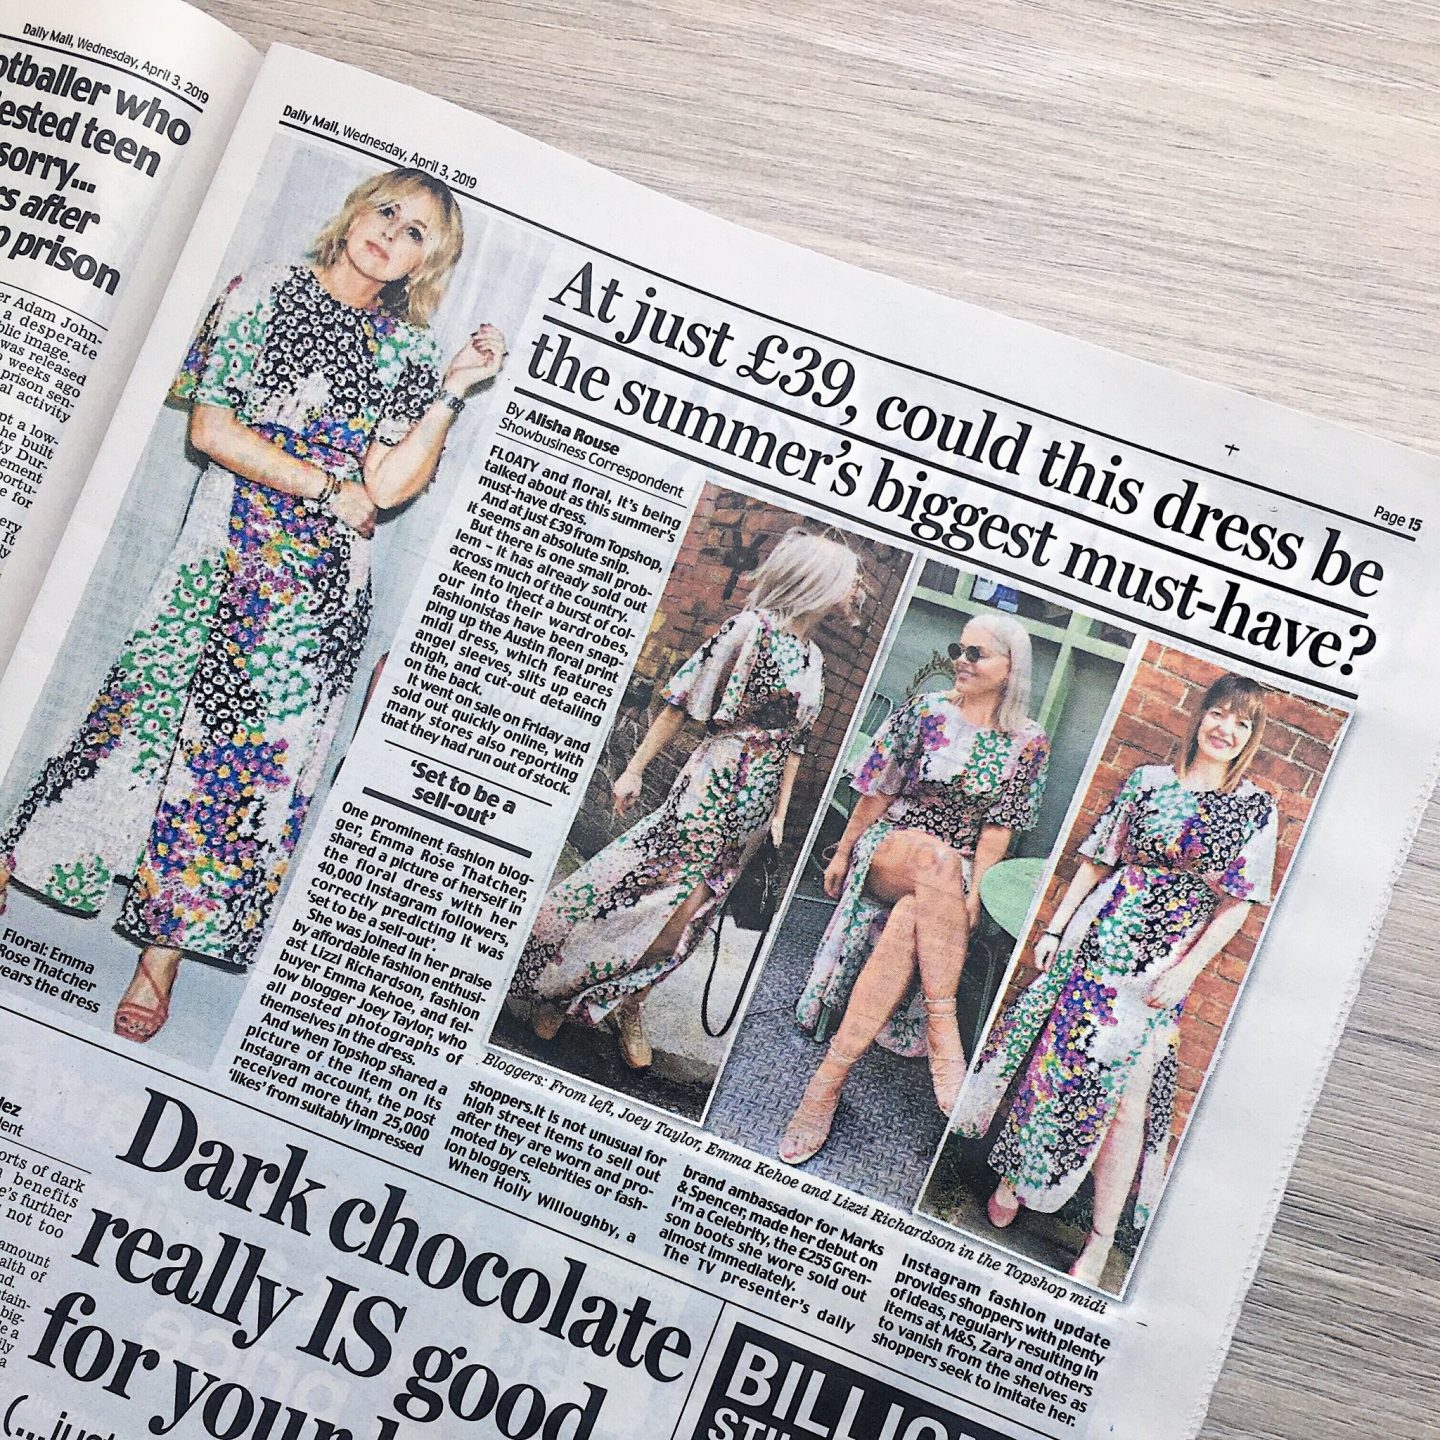 Daily Mail Austin Dress - Lizzi Richardson